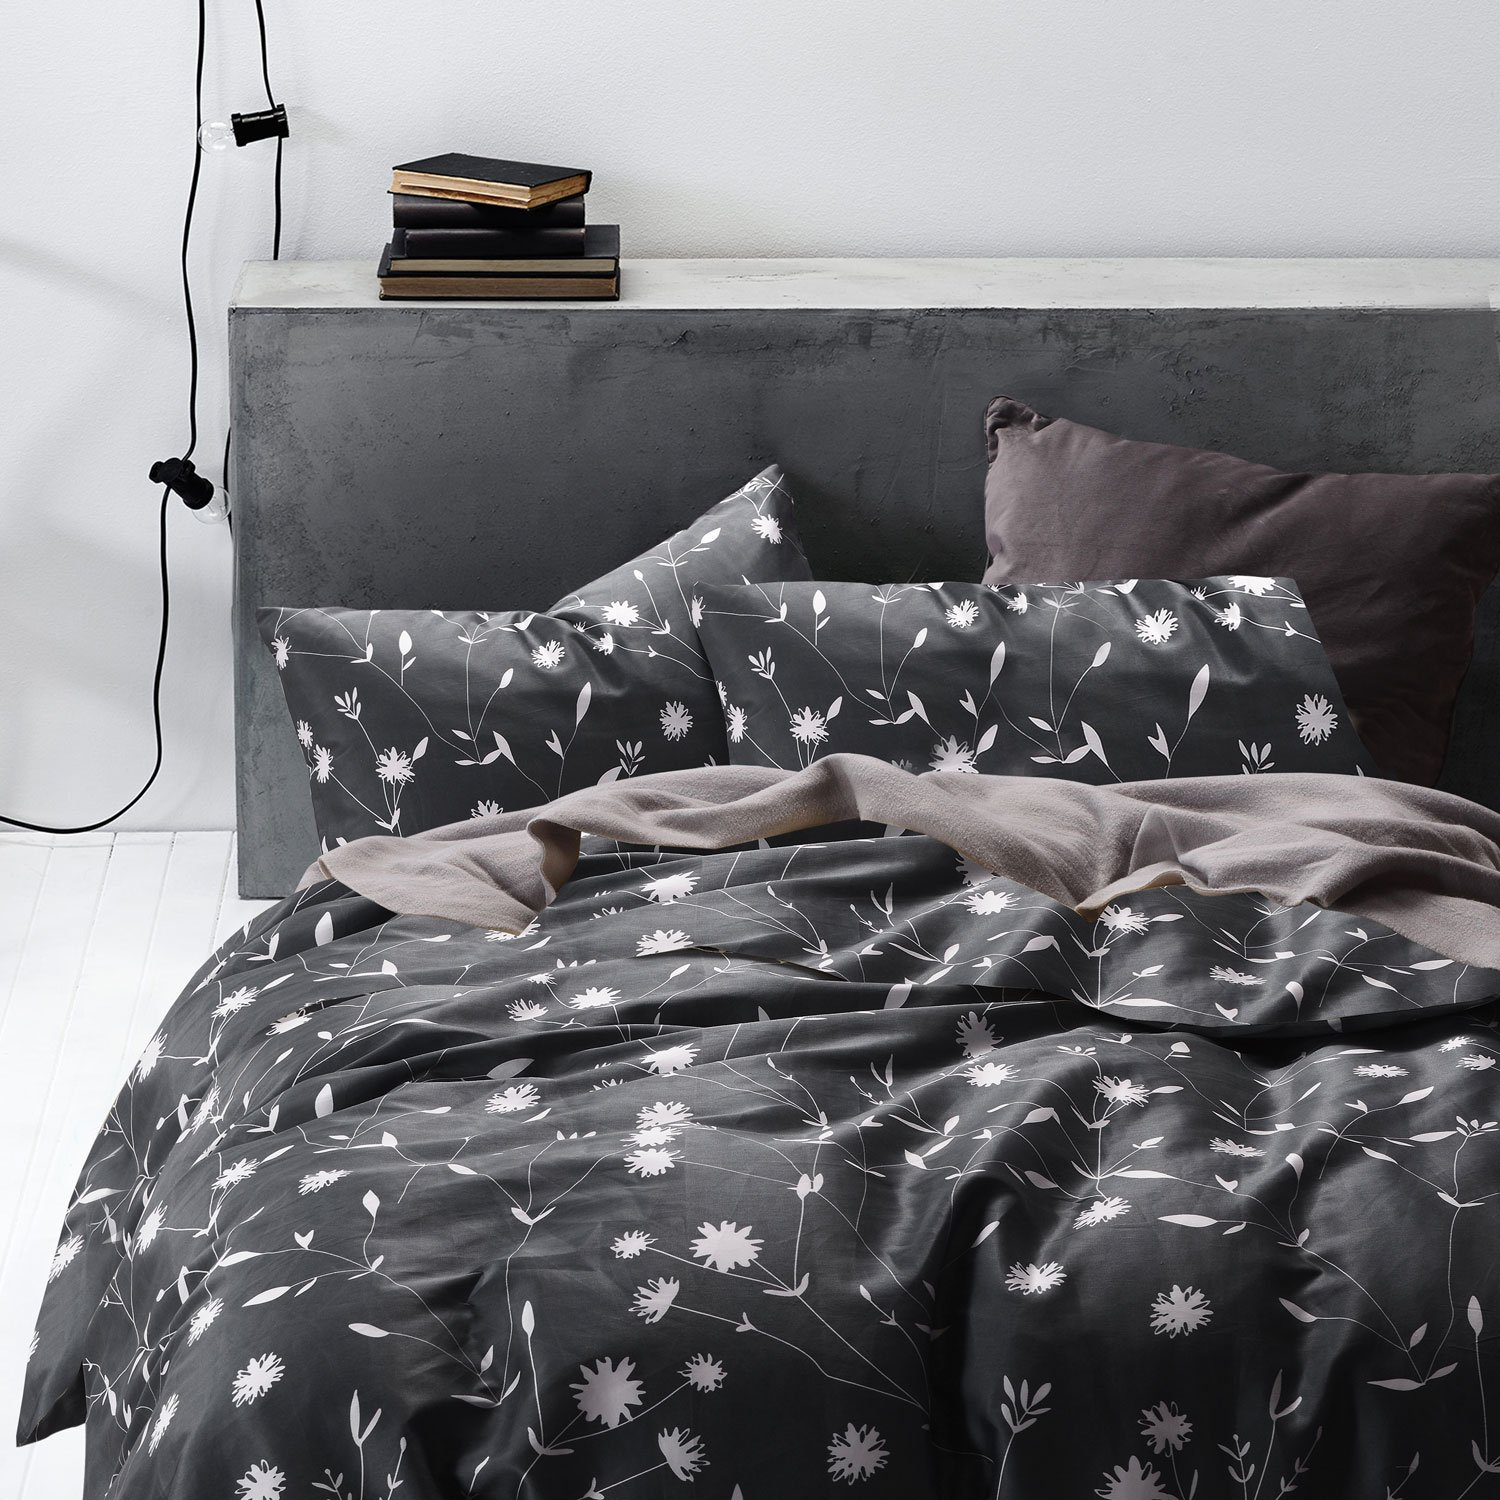 Dark Gray Duvet Cover Set,100% Cotton Bedding, White Floral Flower Pattern Printed on Grey with Zipper Closure and Corner Ties